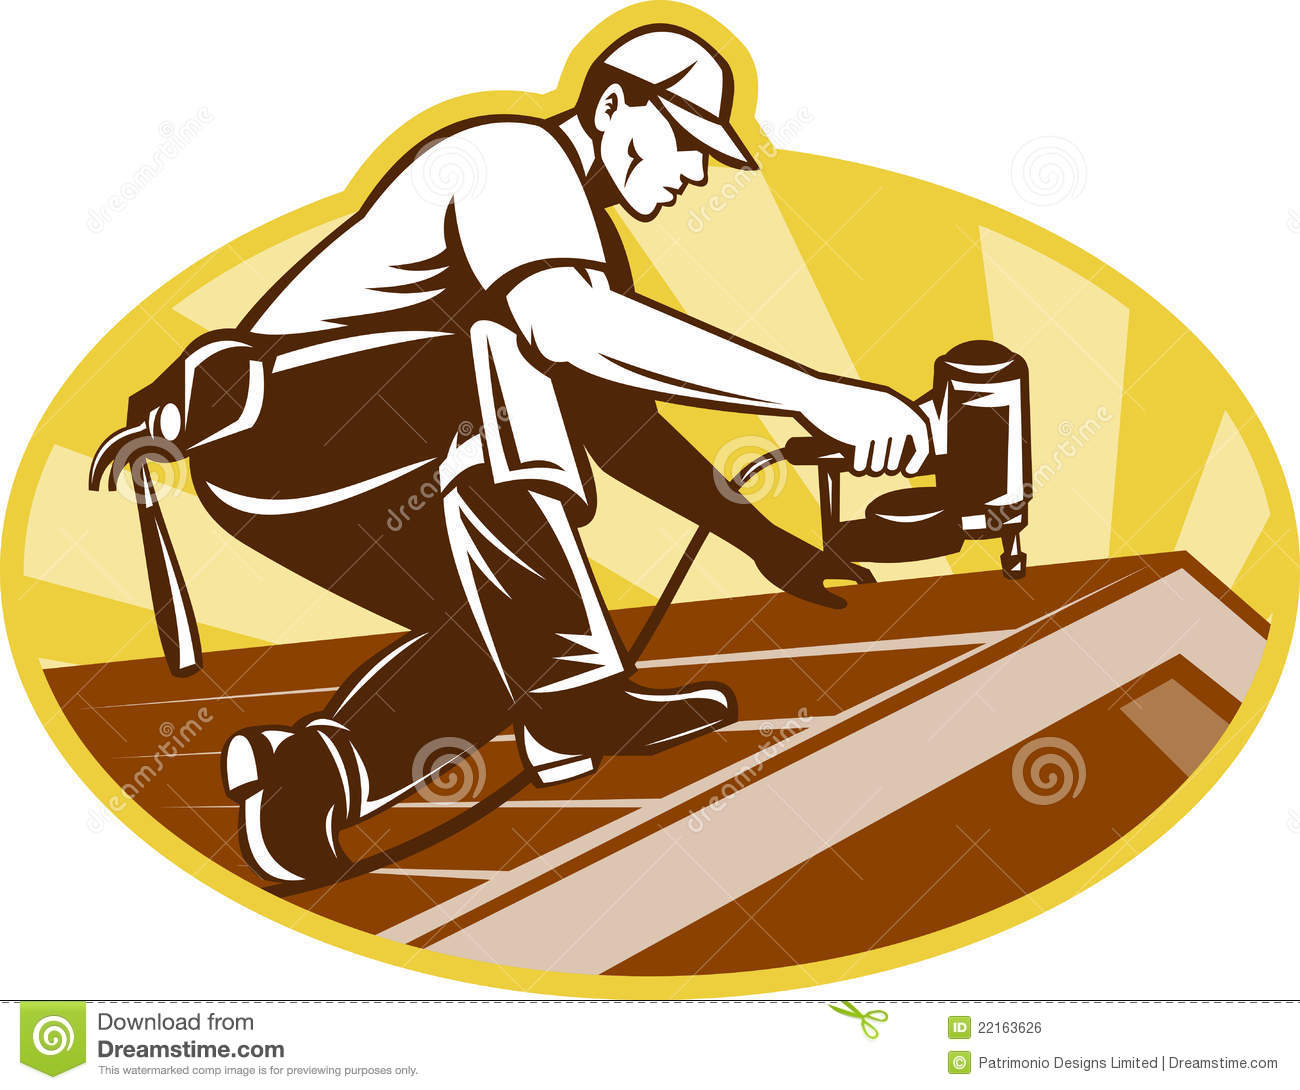 Roofer Roofing Worker Working On Roof Royalty Free Stock Image   Image